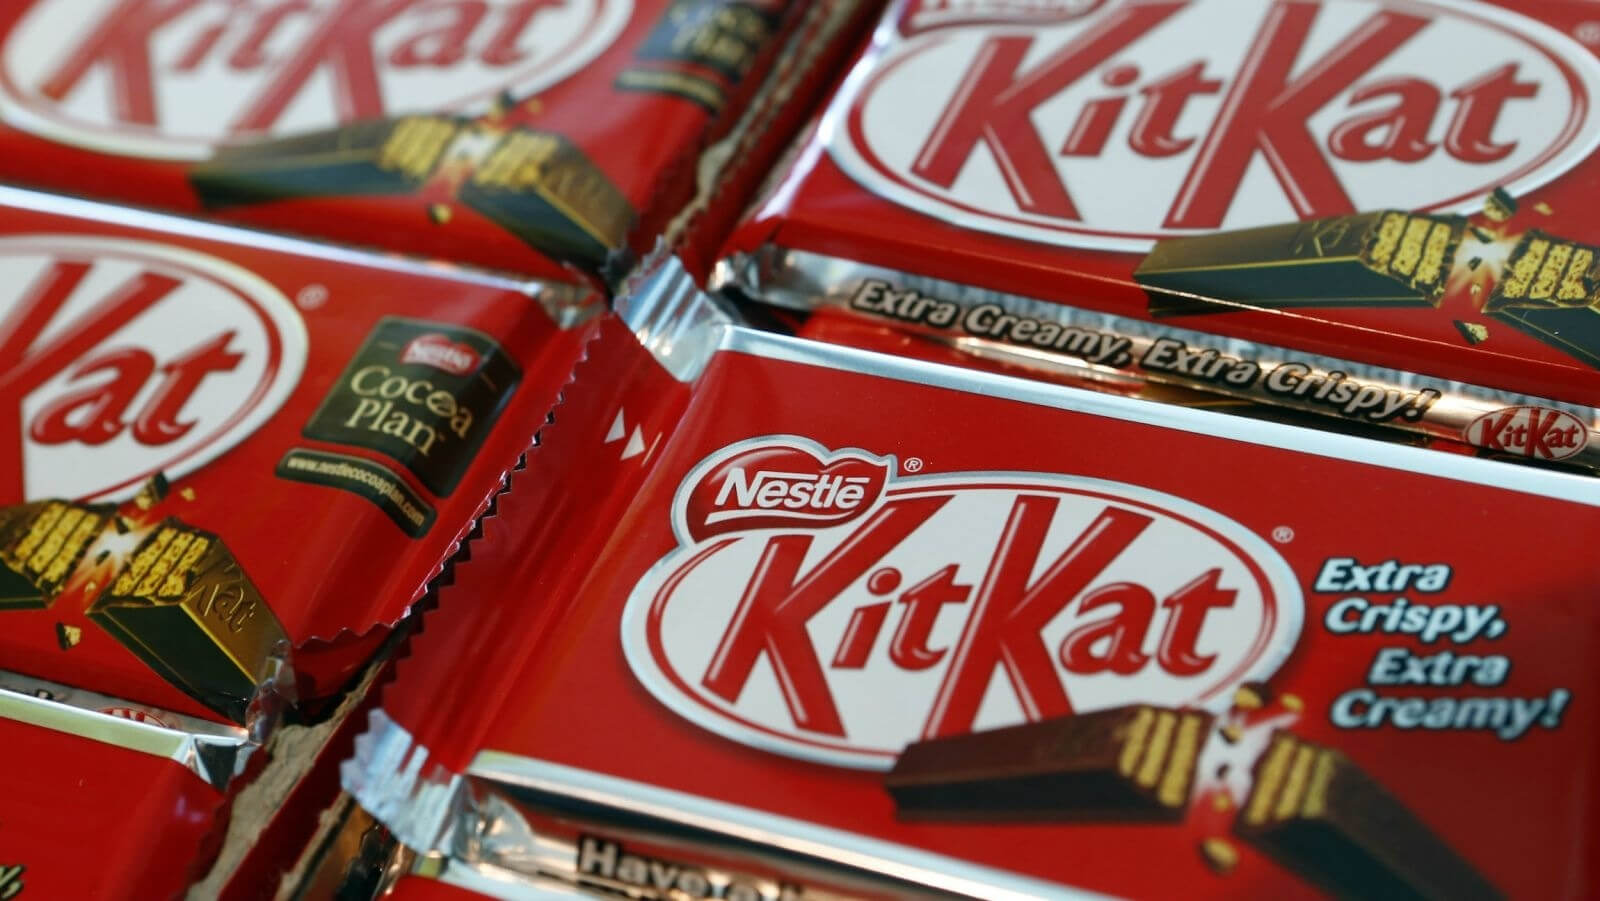 Atari sues Nestle over accusations it copied Breakout game in Kit Kat ads